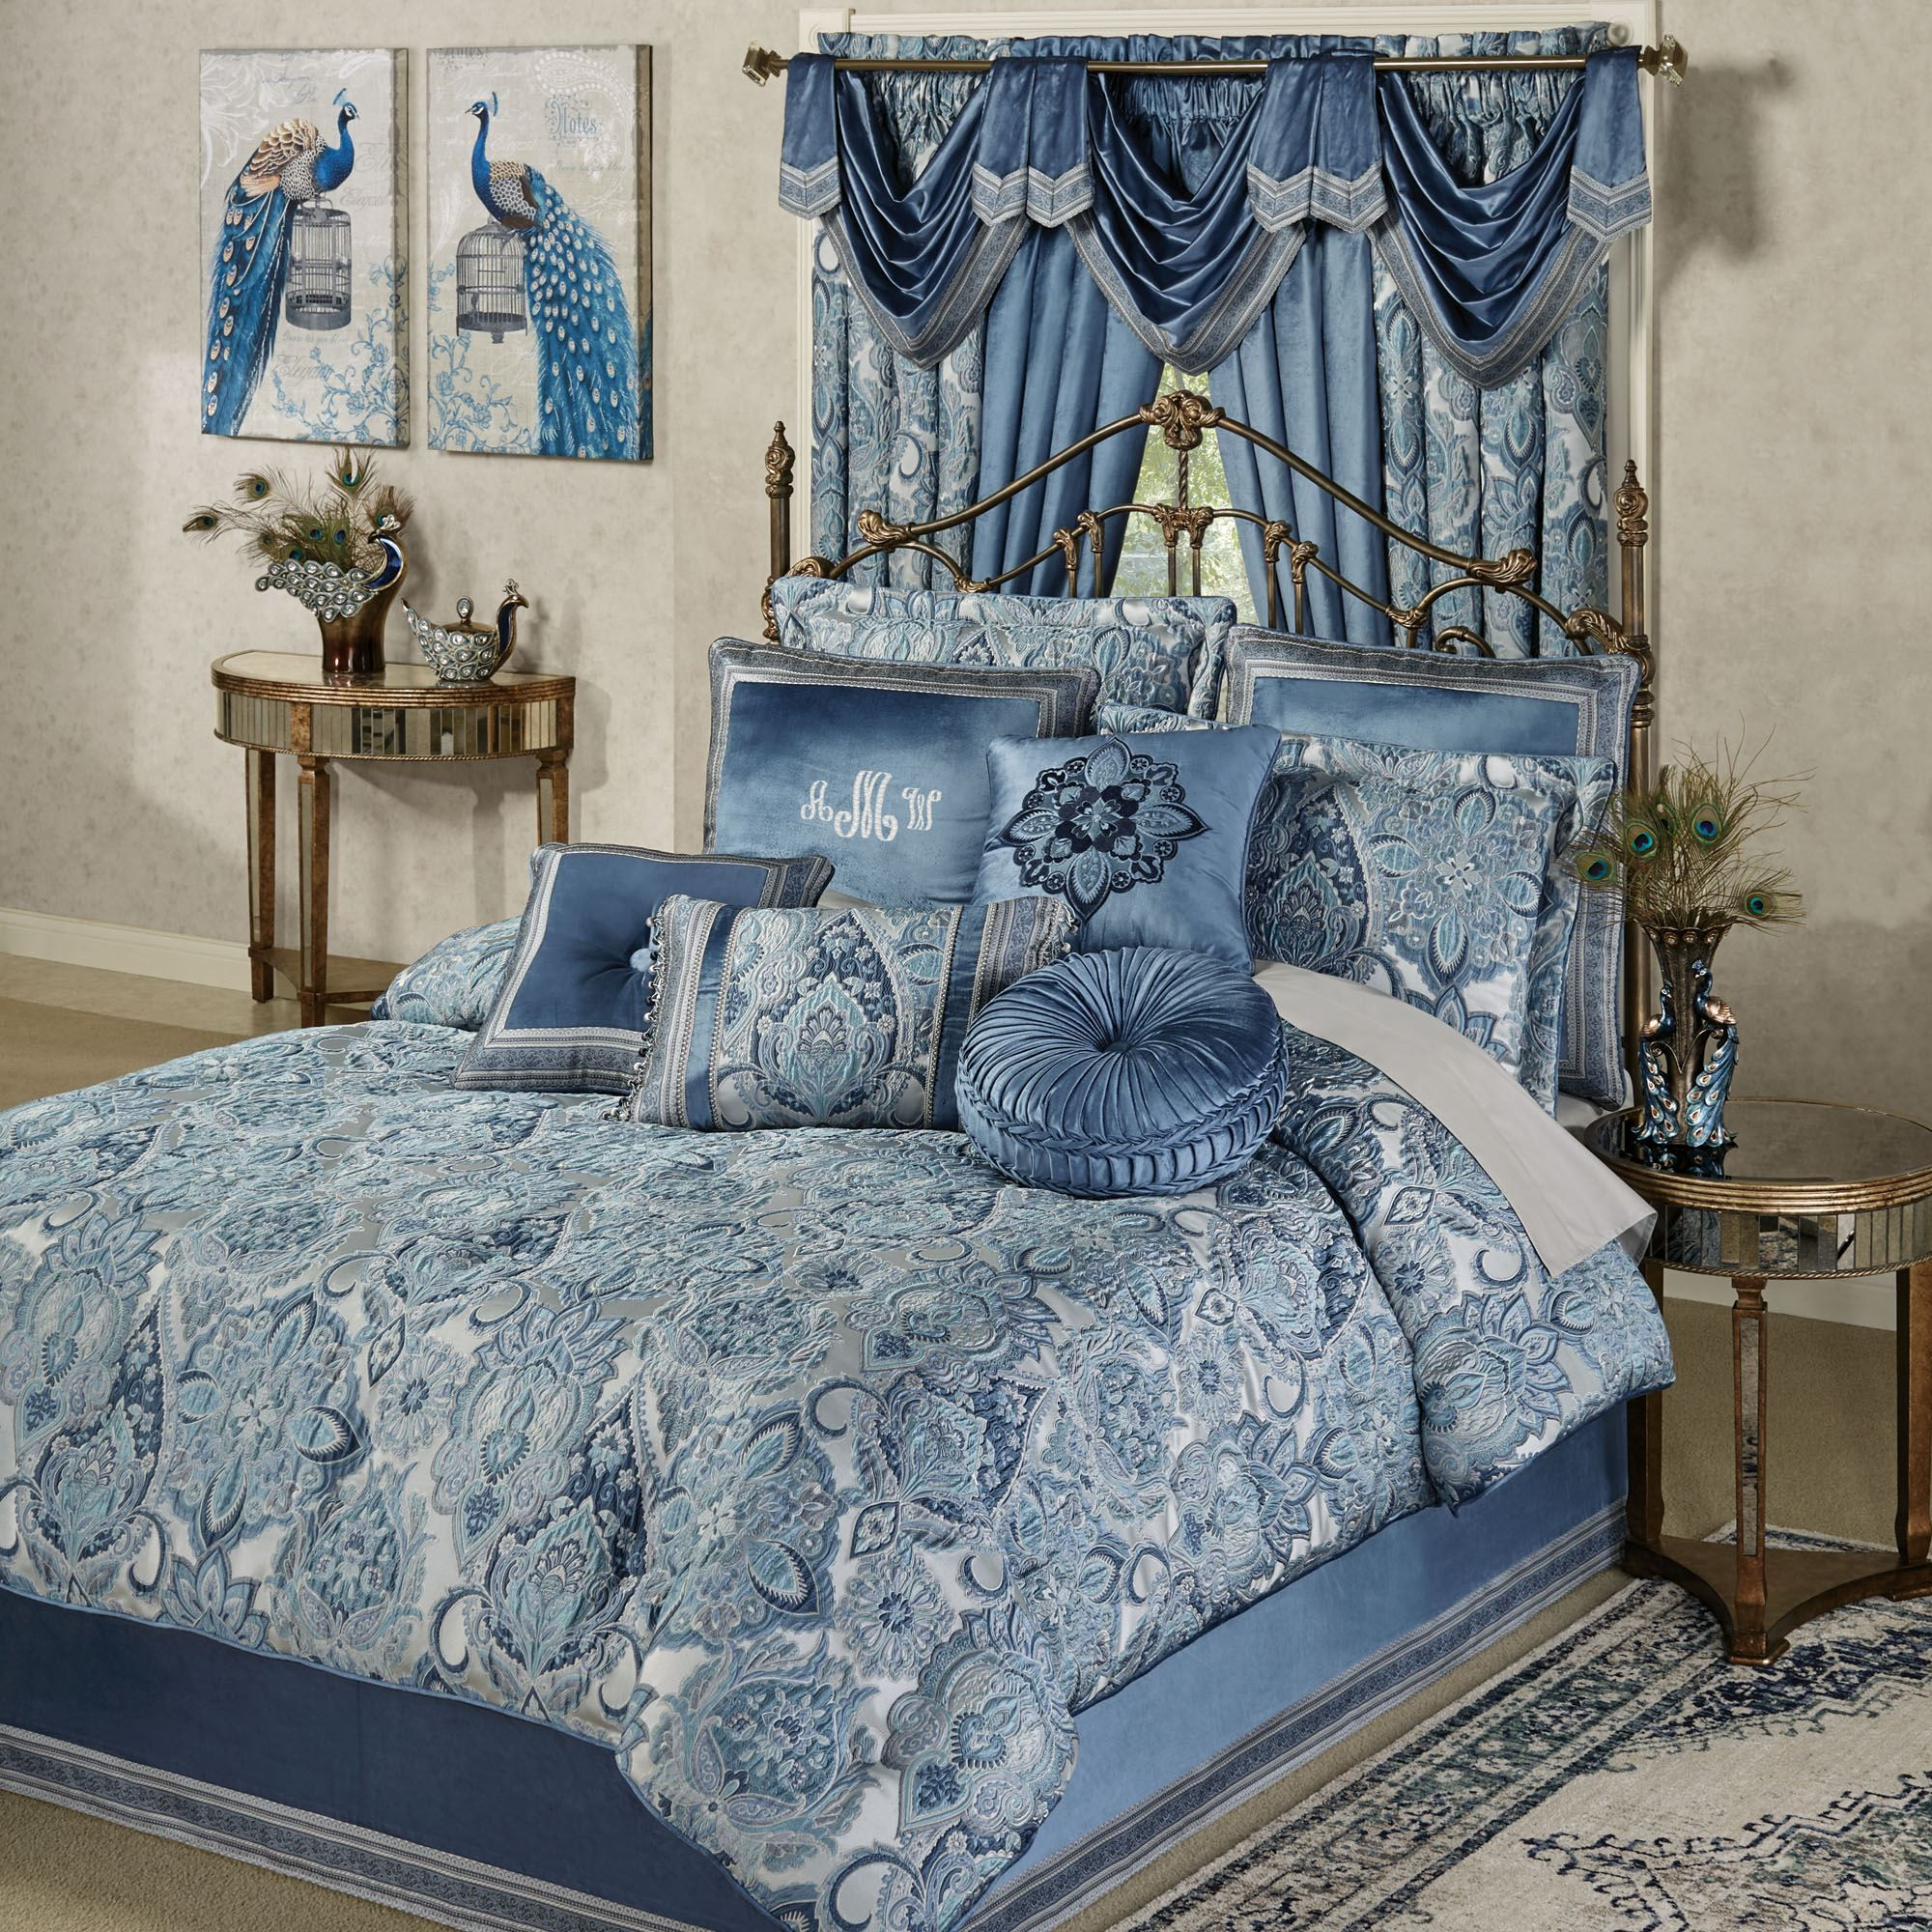 Arabelle Jacobean Damask Blue Comforter Bedding Bedroom Comforter Sets Bed Linens Luxury Luxury Bedding